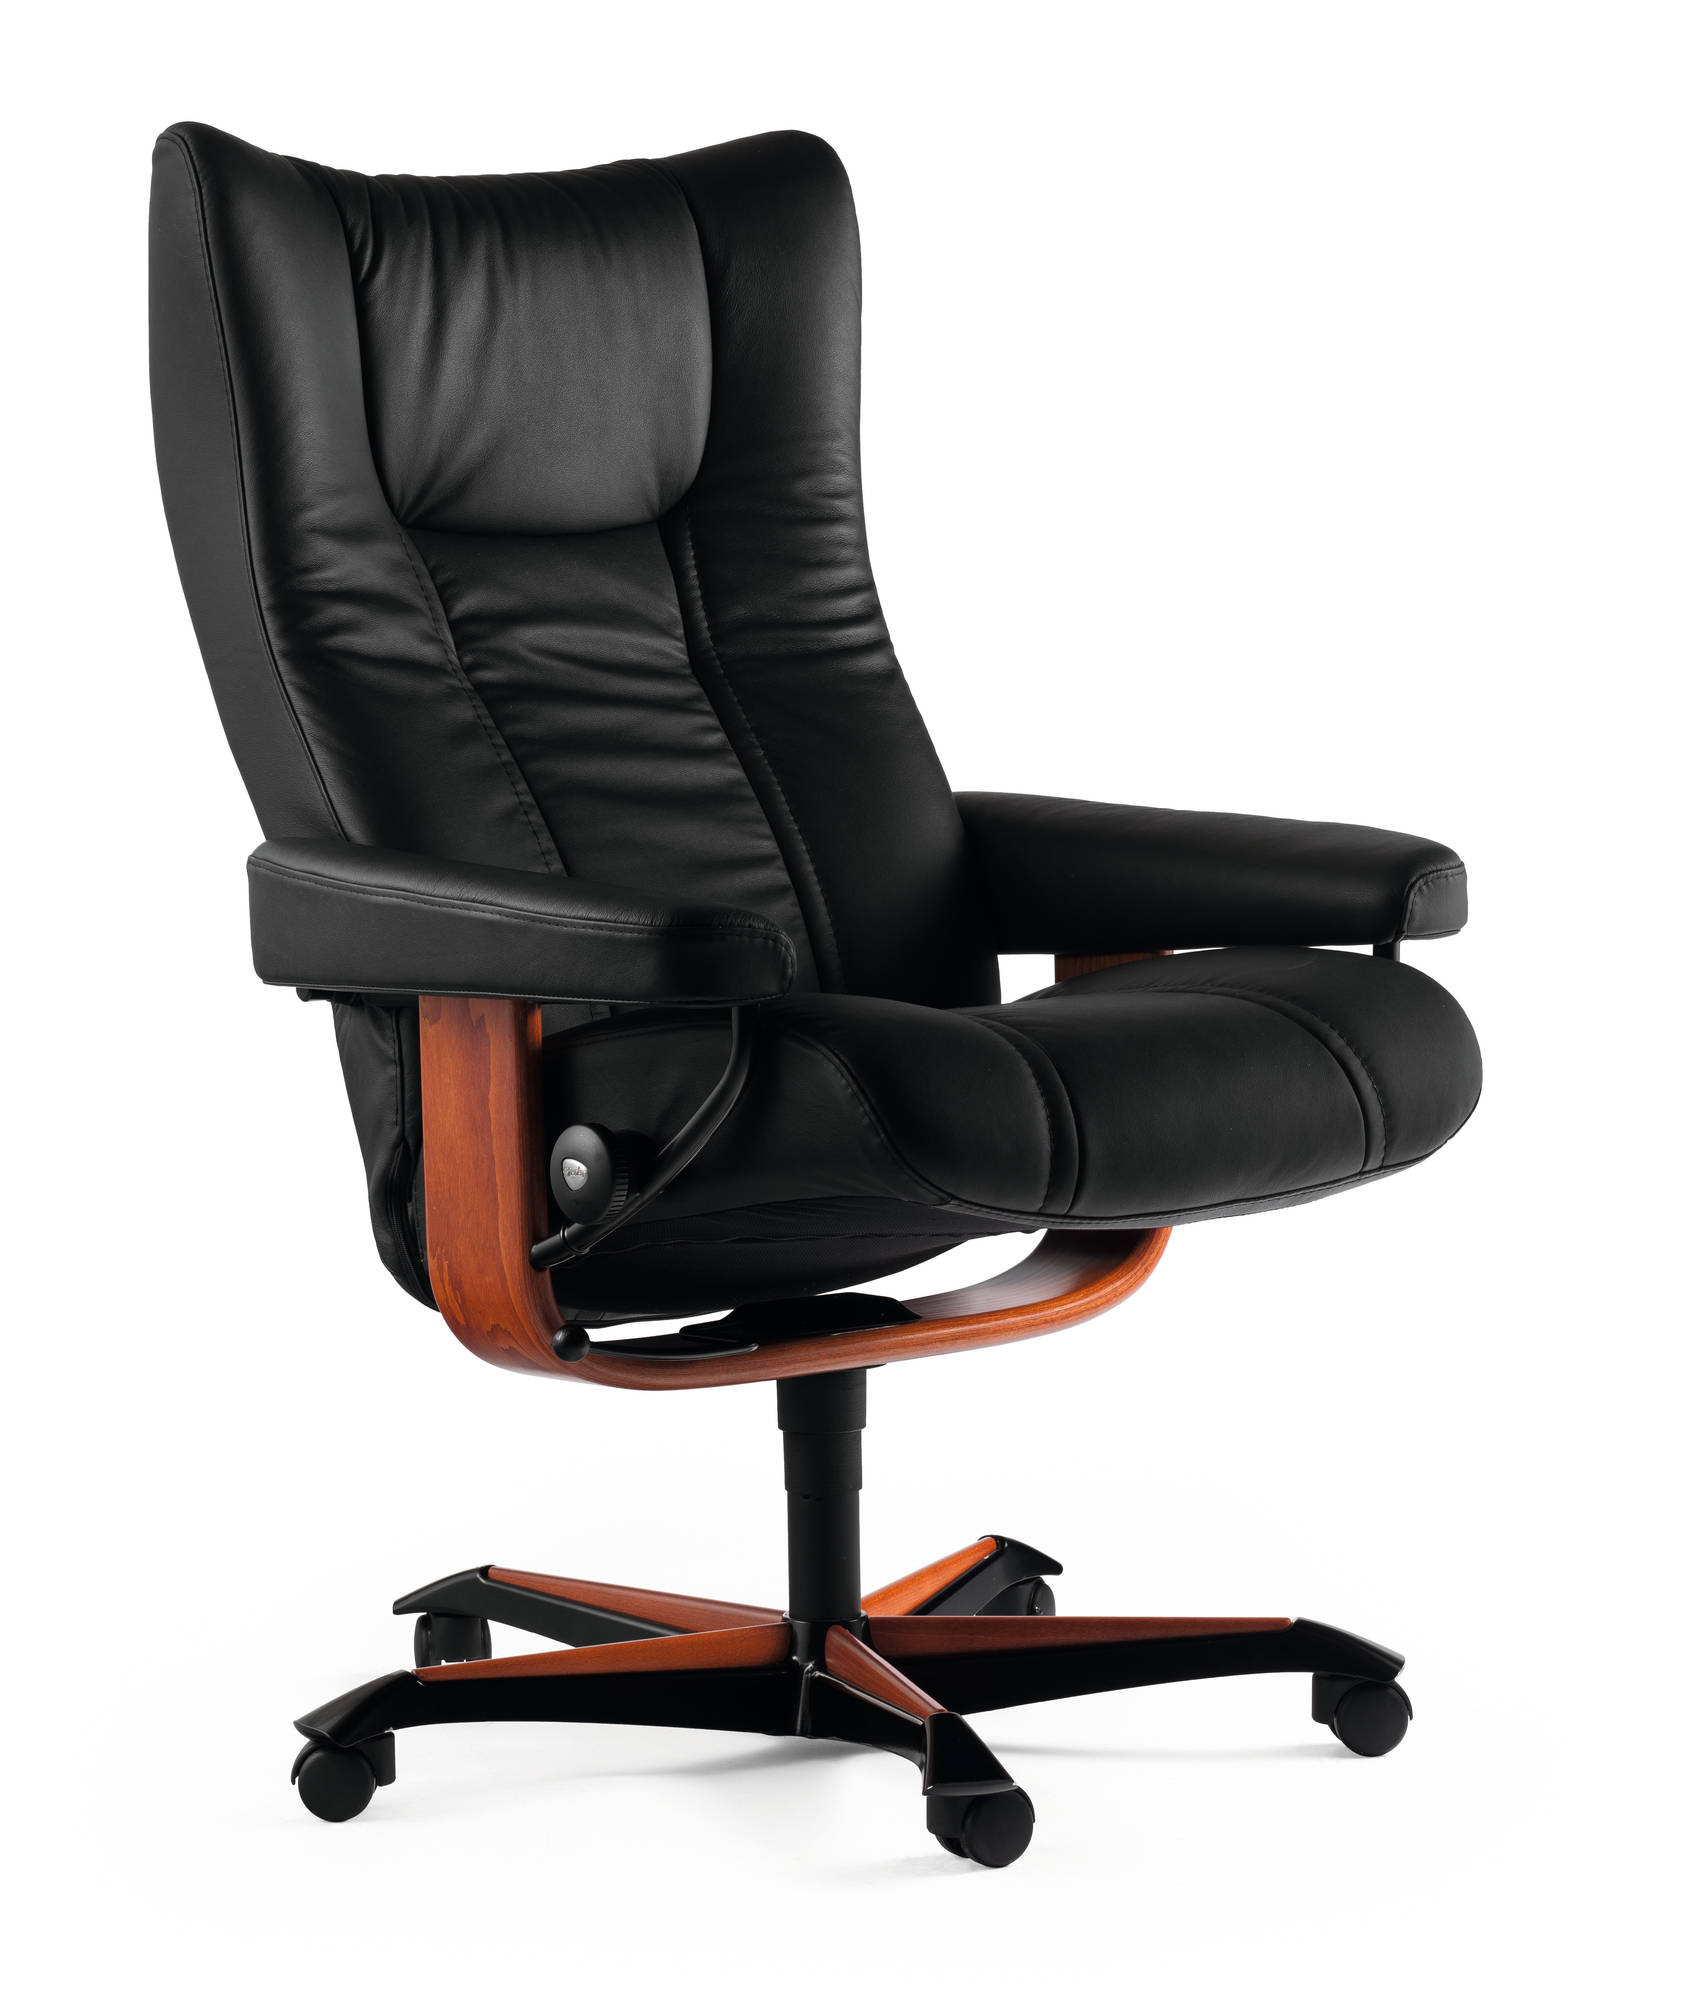 Stressless Office Chair Ekornes Stressless Wing Office Chair Fast U S Delivery